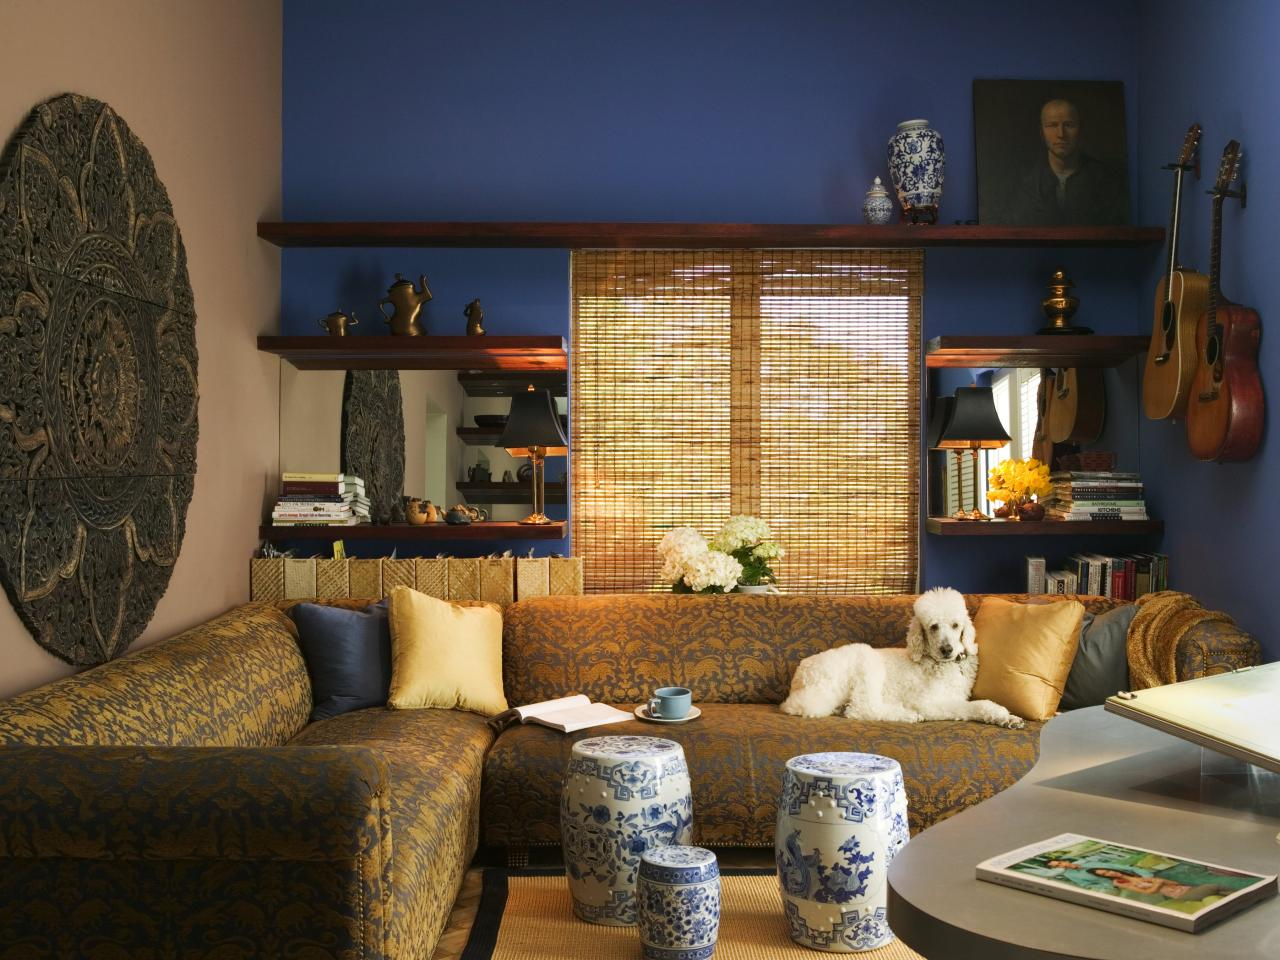 DP_Jane-Ellison-elegant-asian-style-living-room-blue-walls_s4x3.jpg.rend_.hgtvcom.1280.960